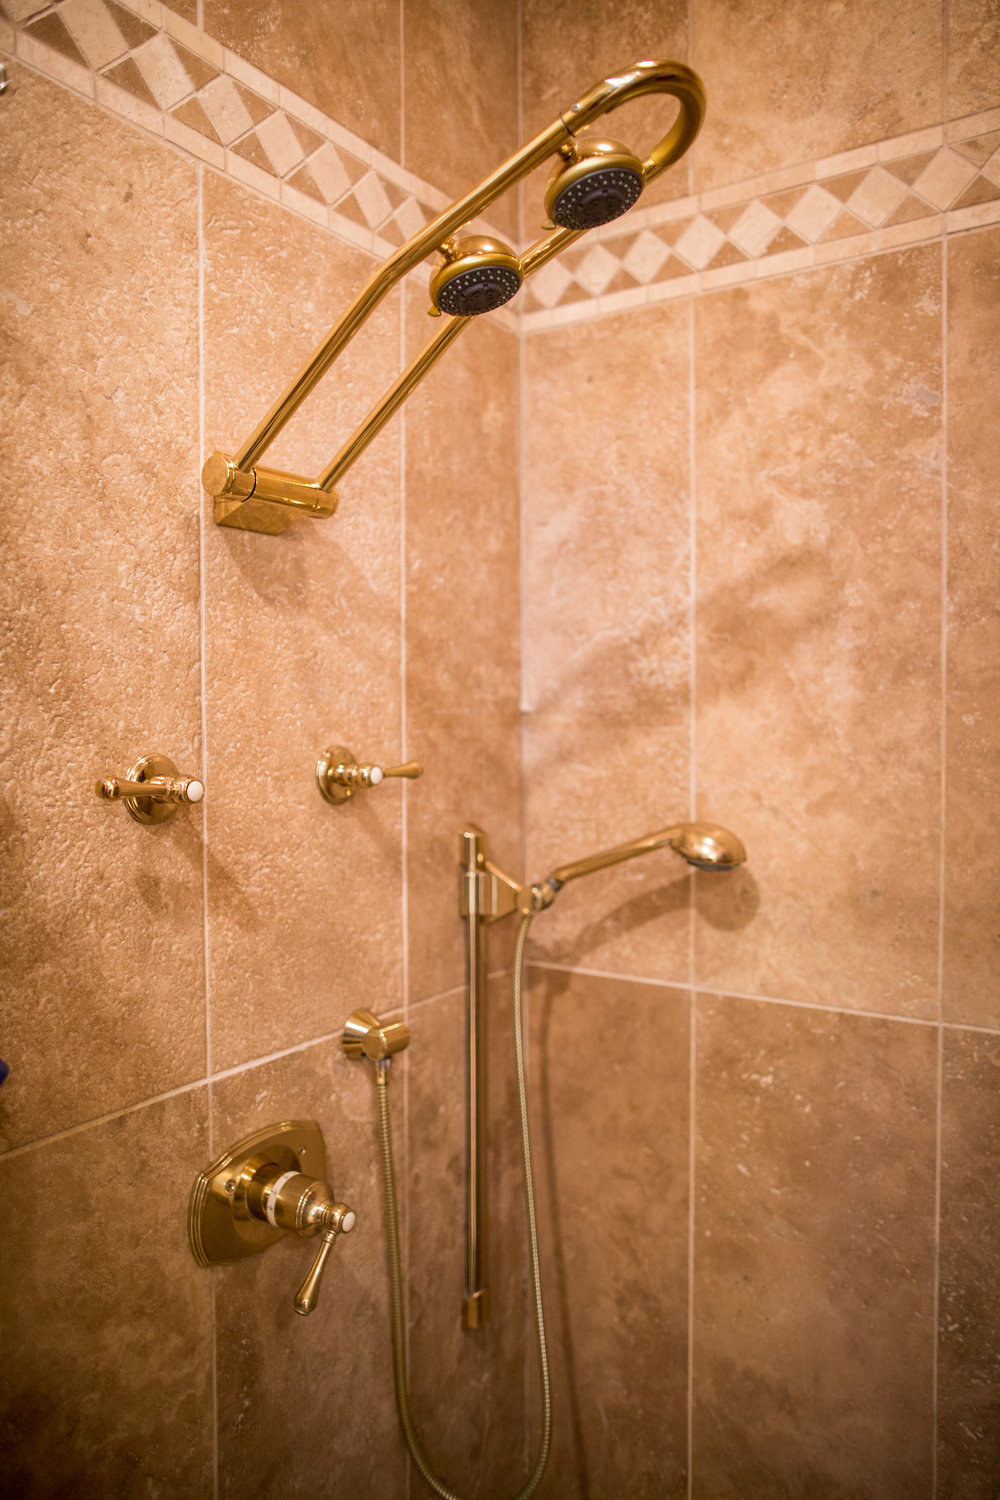 MASTER SHOWER WITH THREE SHOW HEADS